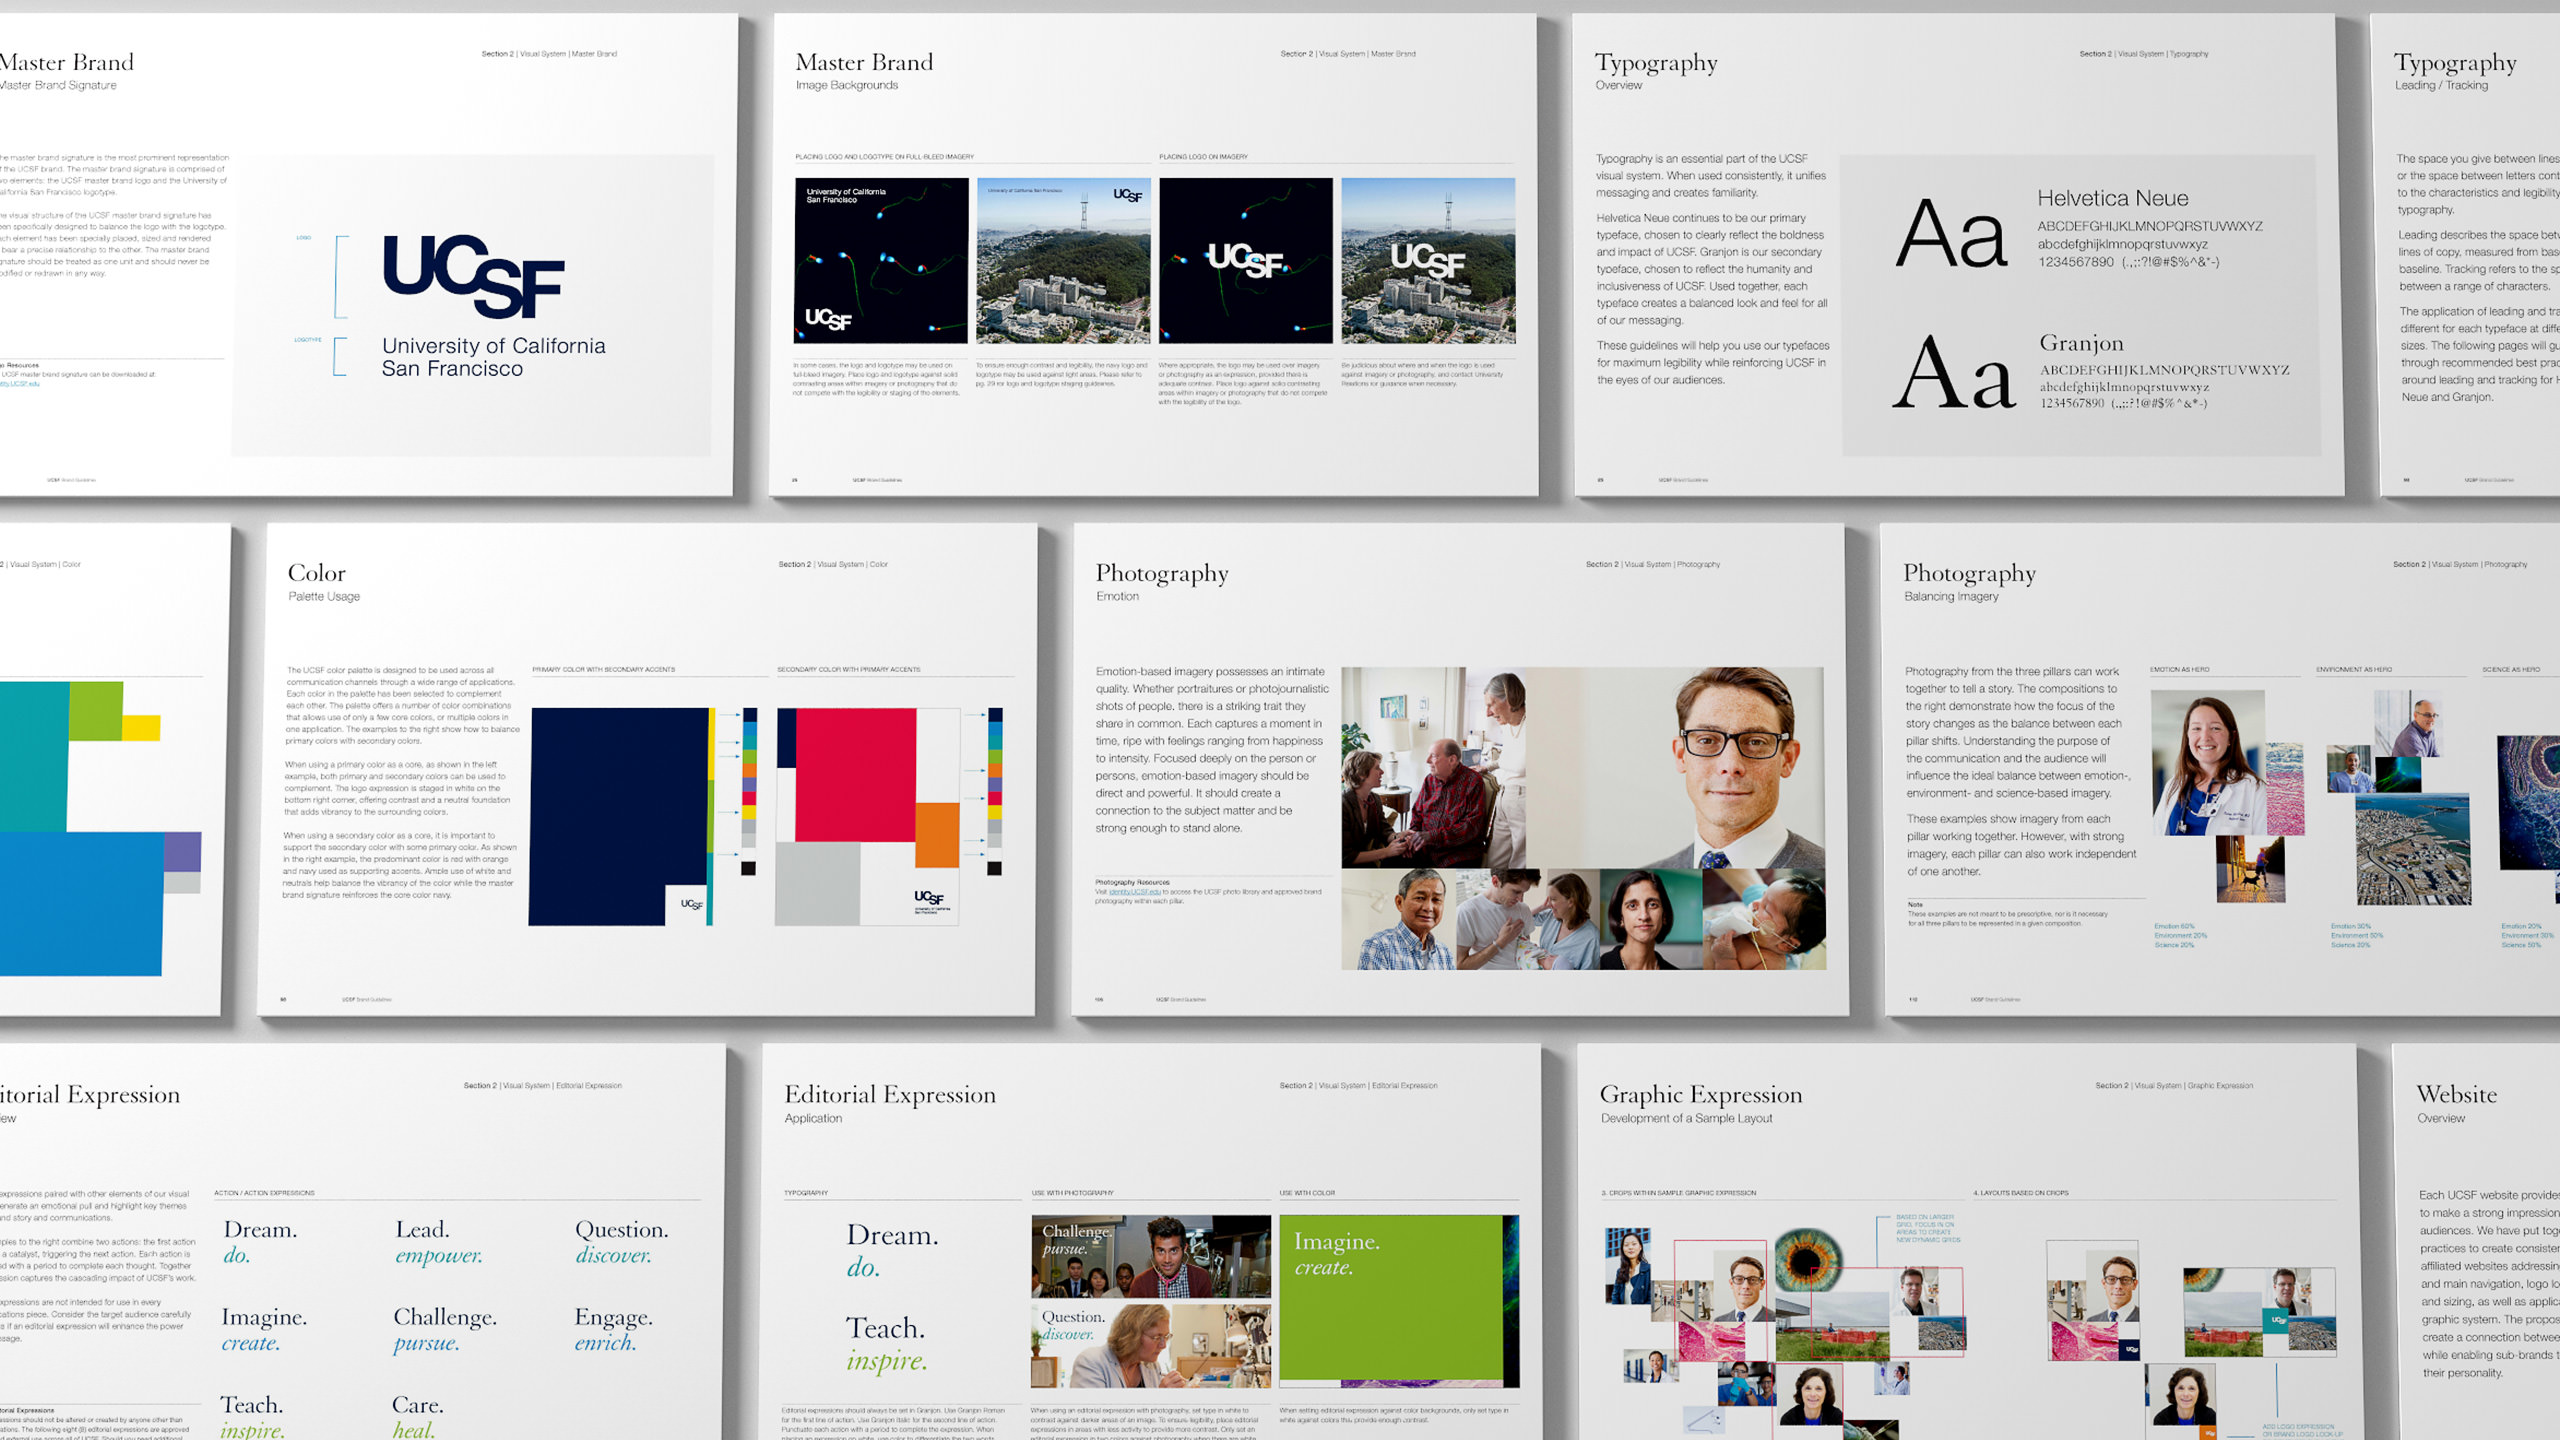 UCSF Brand Guidelines Pages